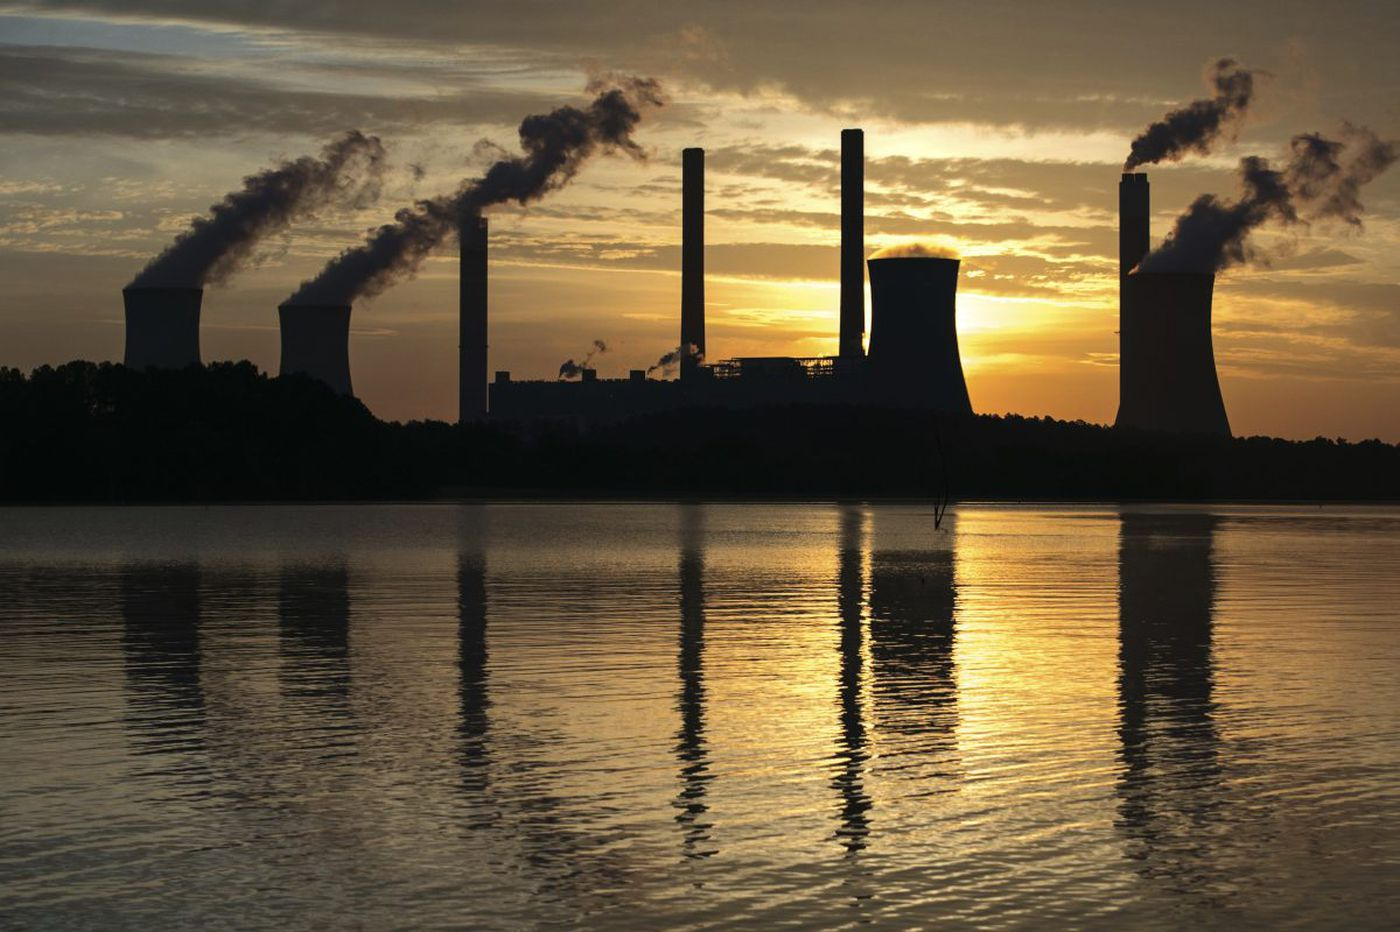 Carbon dioxide at highest level in 800,000 years, says UN meteorologists